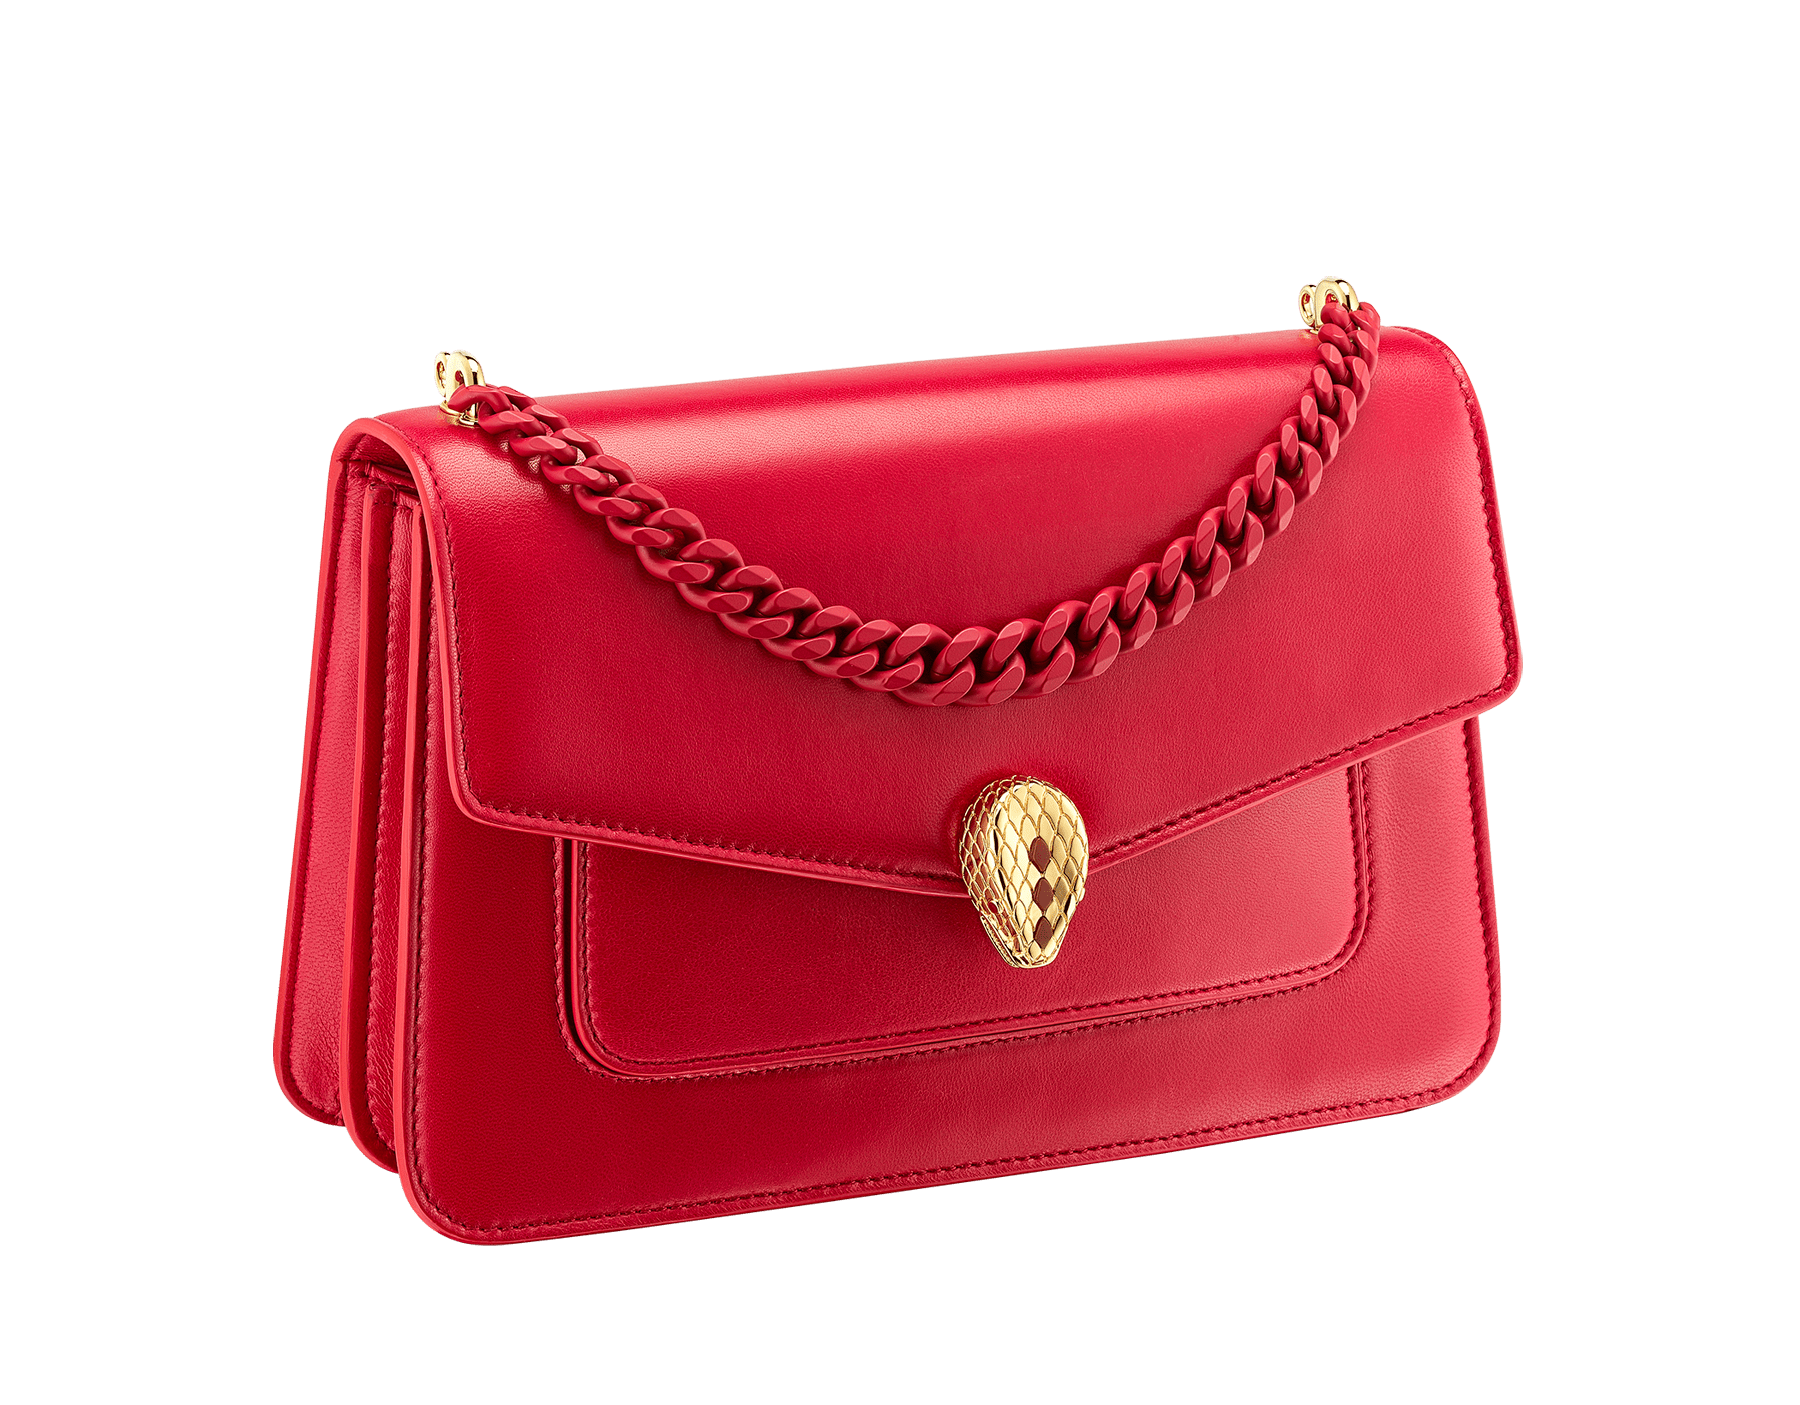 """""""Serpenti Forever"""" maxi chain crossbody bag in Amaranth Garnet red nappa leather, with Pink Spinel fuchsia nappa leather internal lining. New Serpenti head closure in gold plated brass, finished with small red carnelian scales in the middle and red enamel eyes. 1138-MCN image 3"""